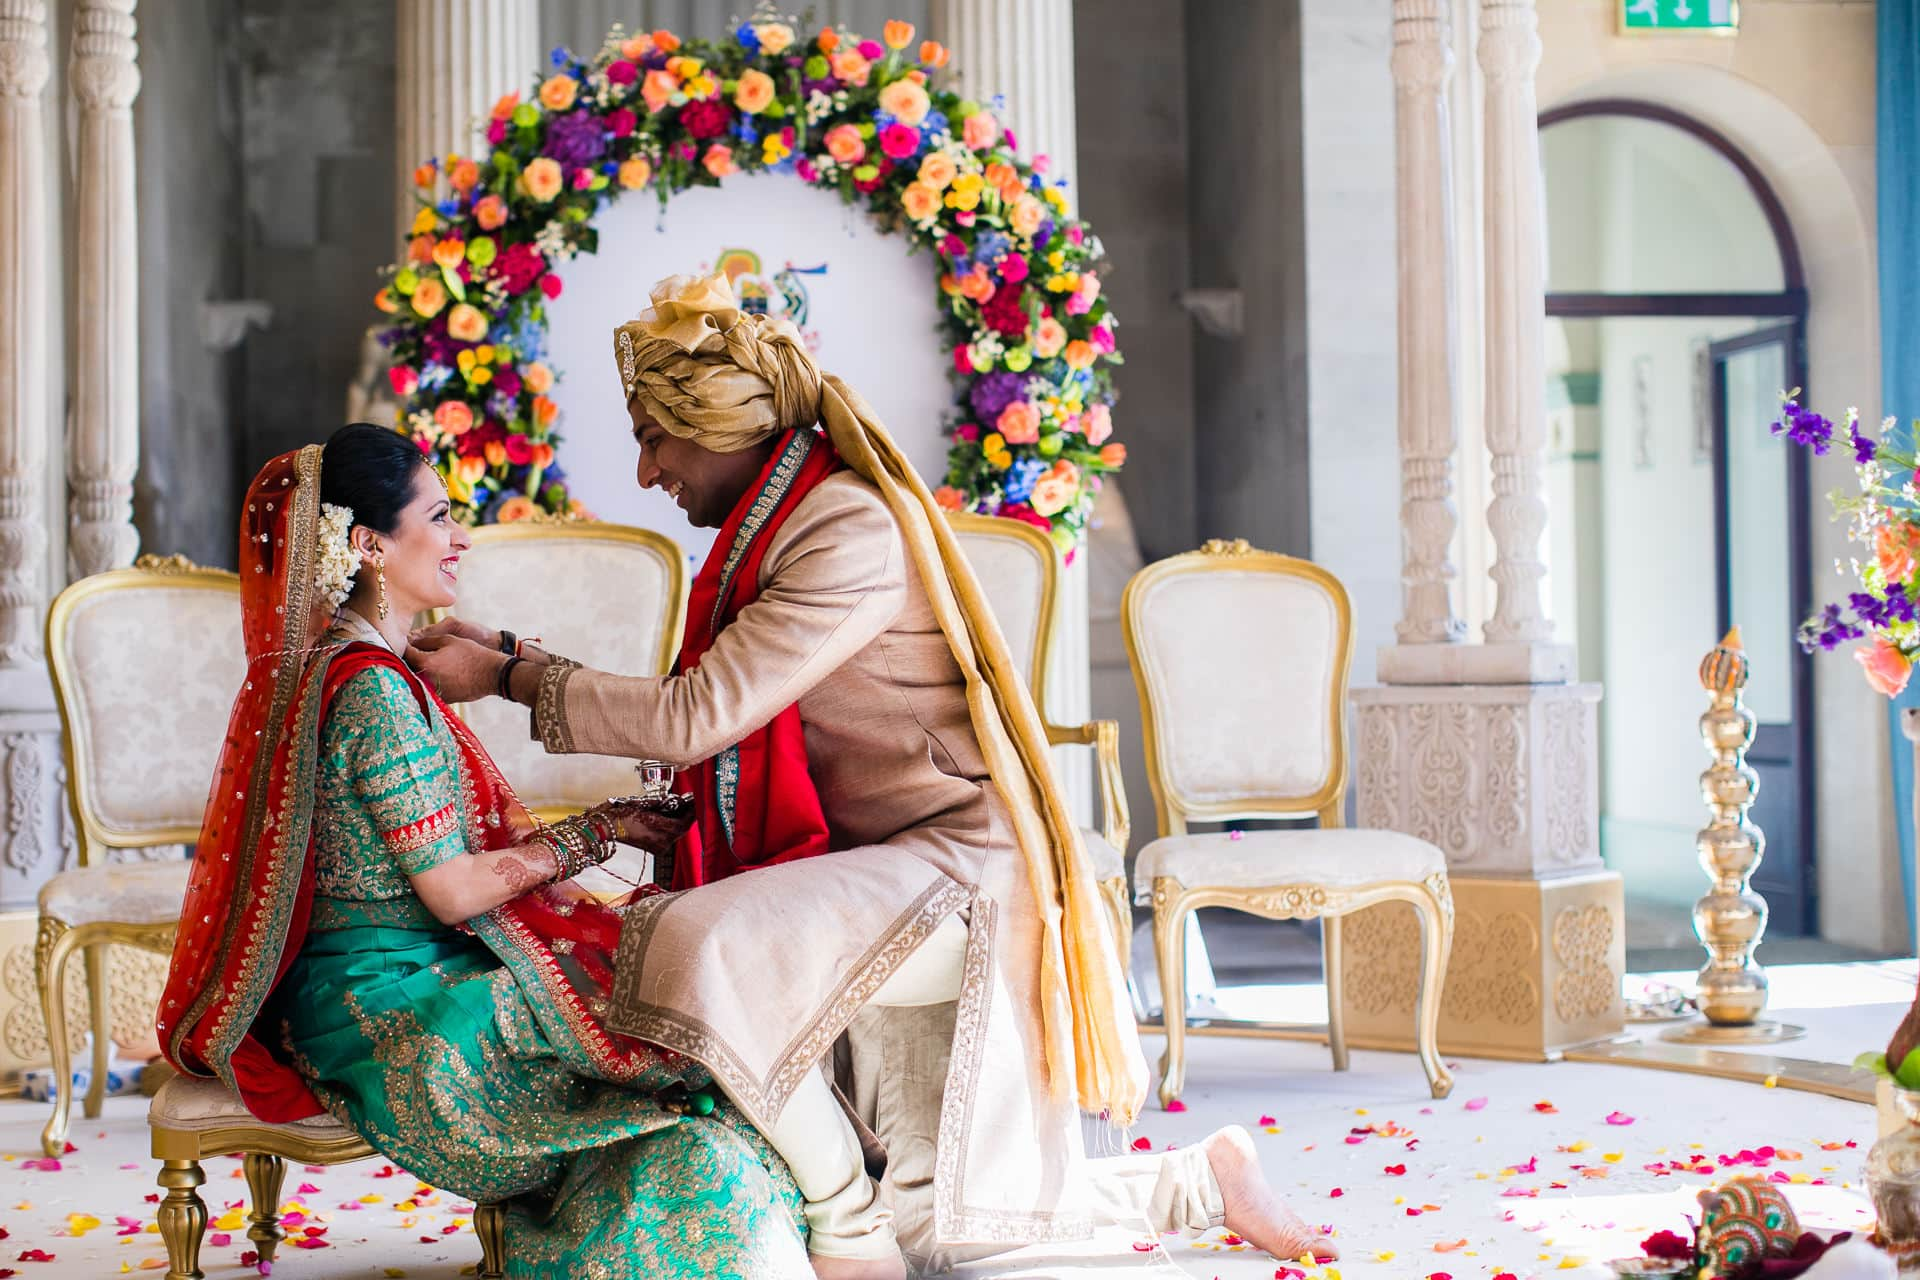 Groom putting Mangal Sutra onto bride